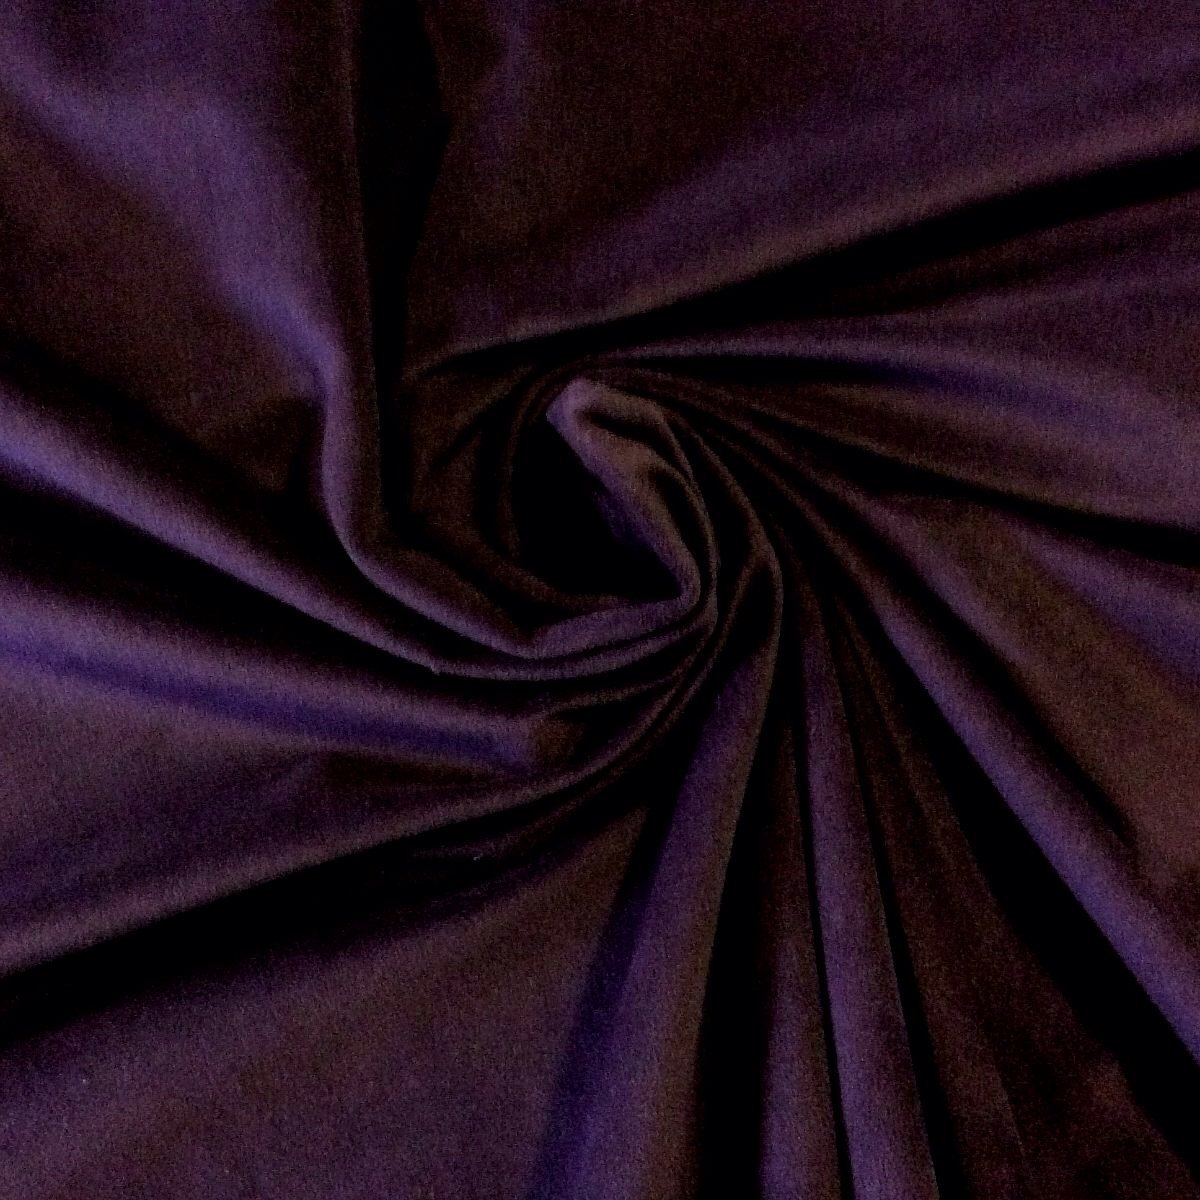 purple upholstery fabric and - photo #47